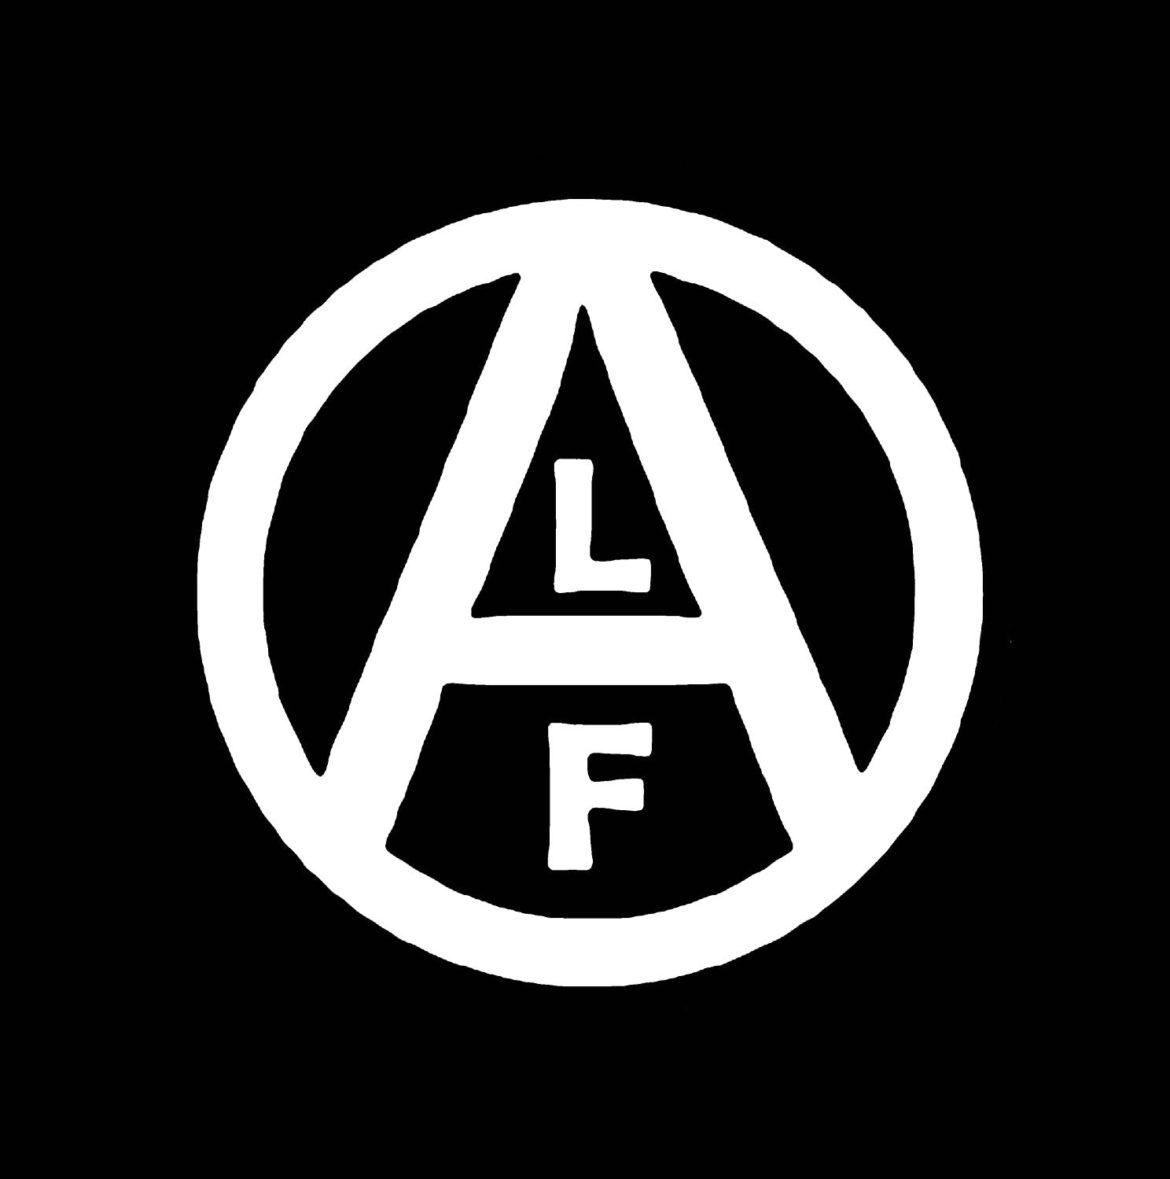 Ronnie-Lee-Founder-of-the-ALF.jpg